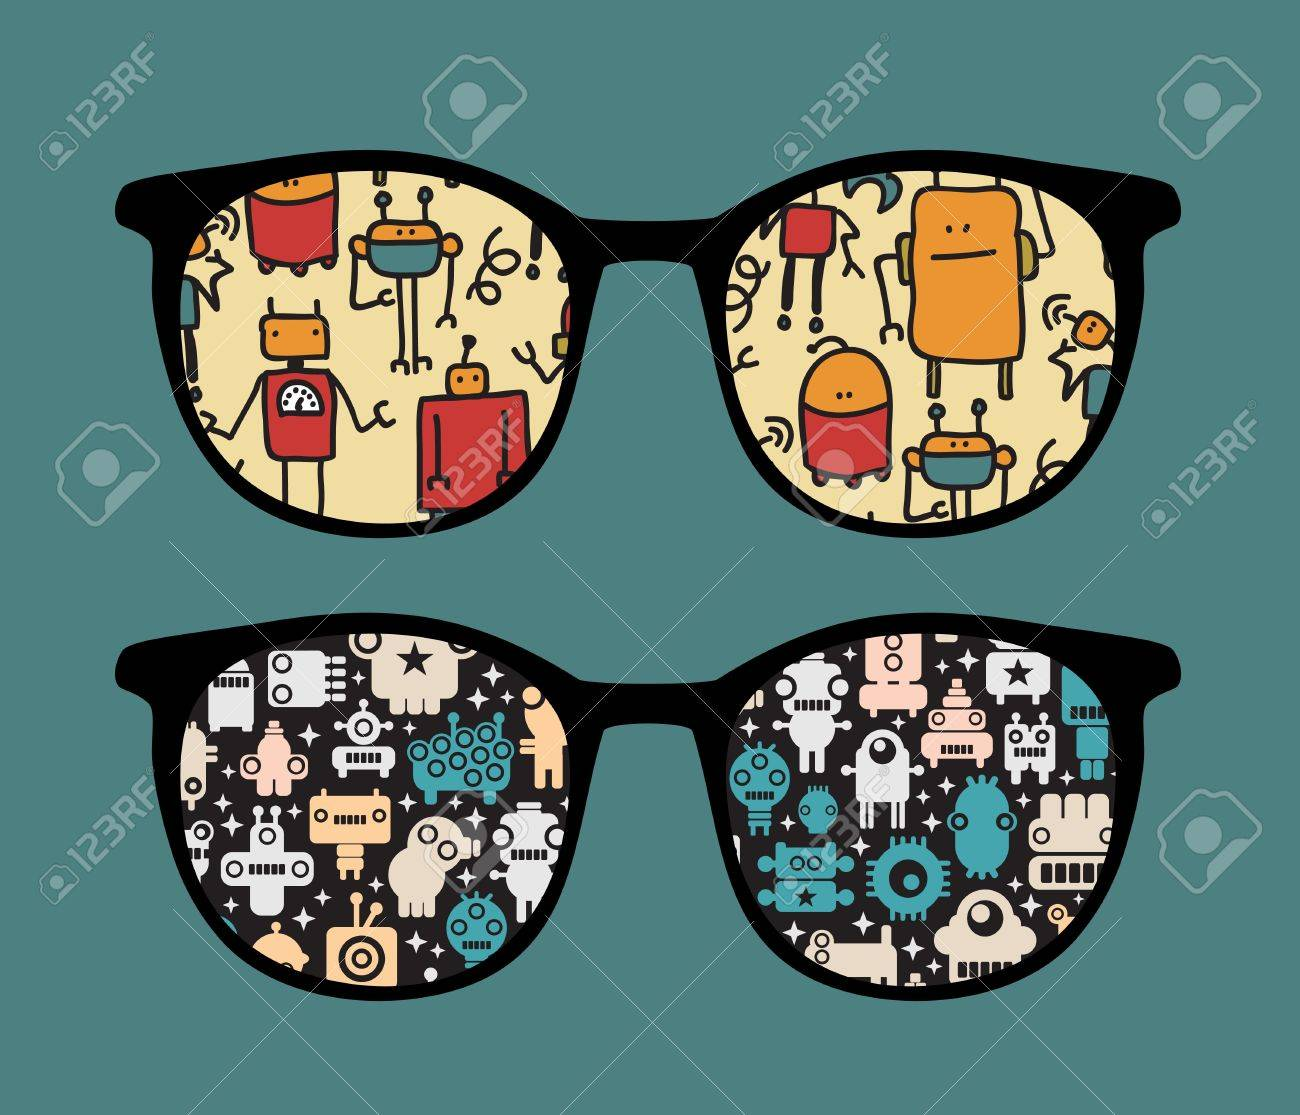 Retro sunglasses with robots pattern reflection in it. Stock Vector - 13285344